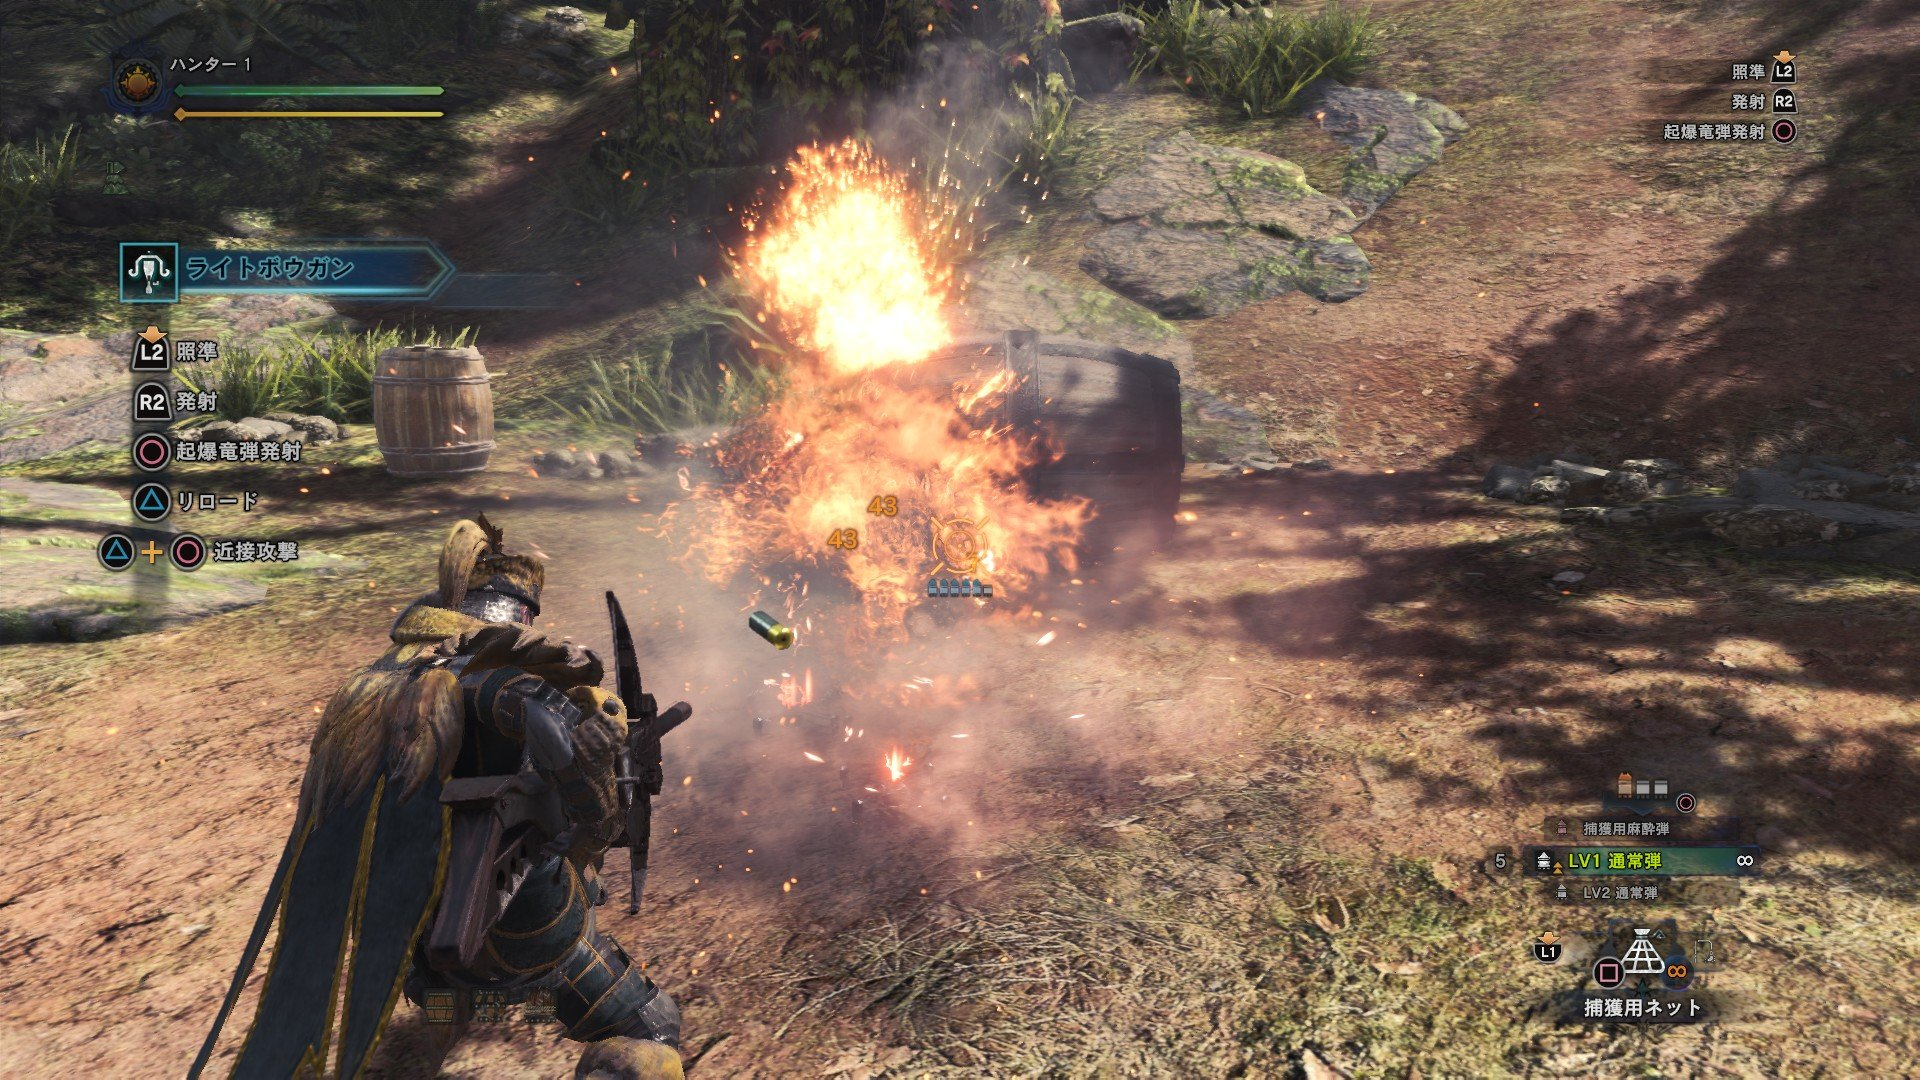 New Action Games For Ps3 : Monster hunter world new screenshots gameplay fextralife